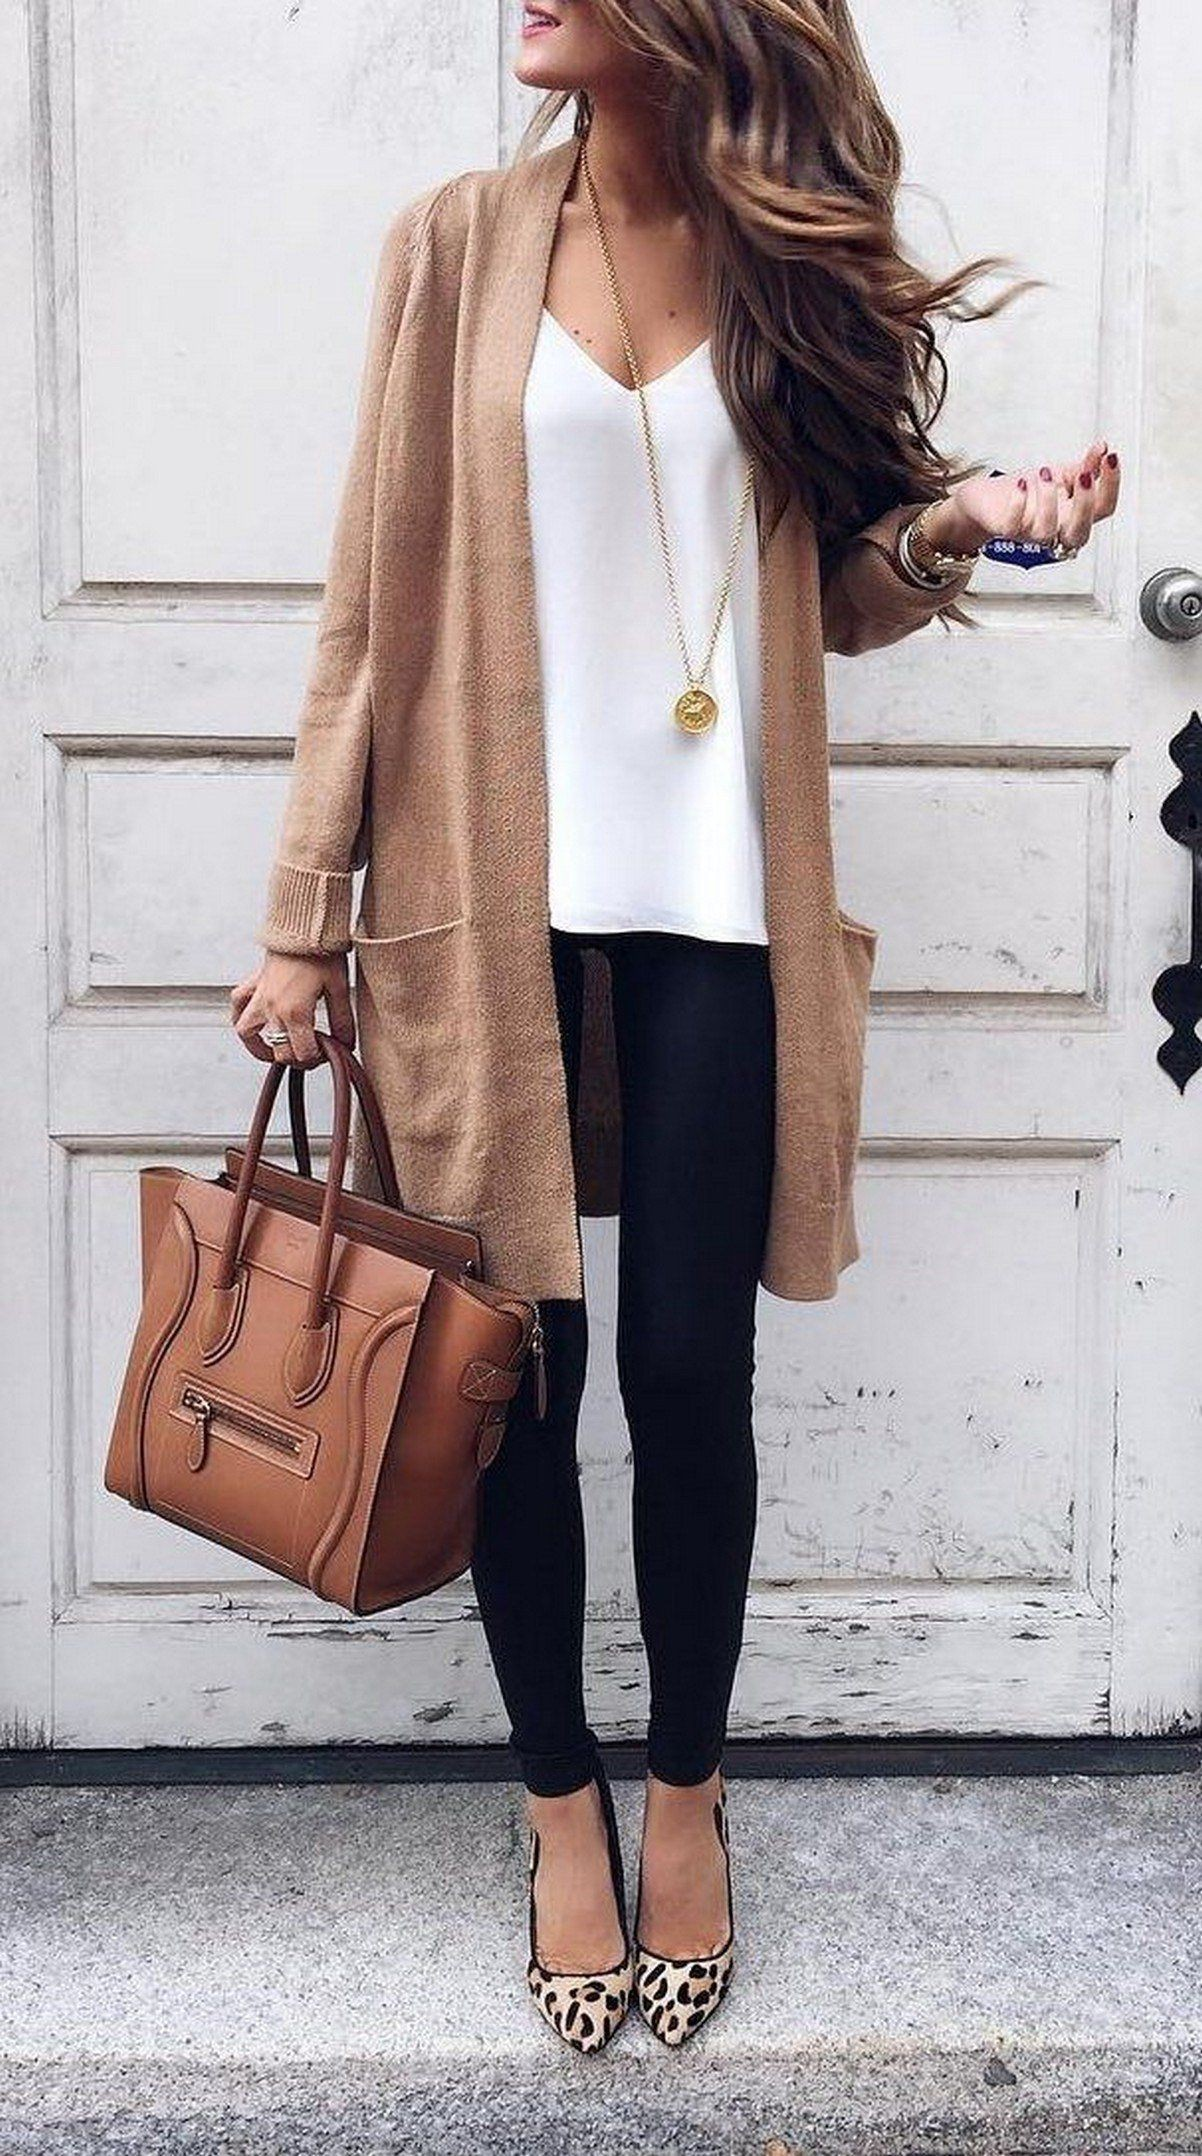 Fall outfits for women, empire silhouette, street fashion, petite size, casual wear